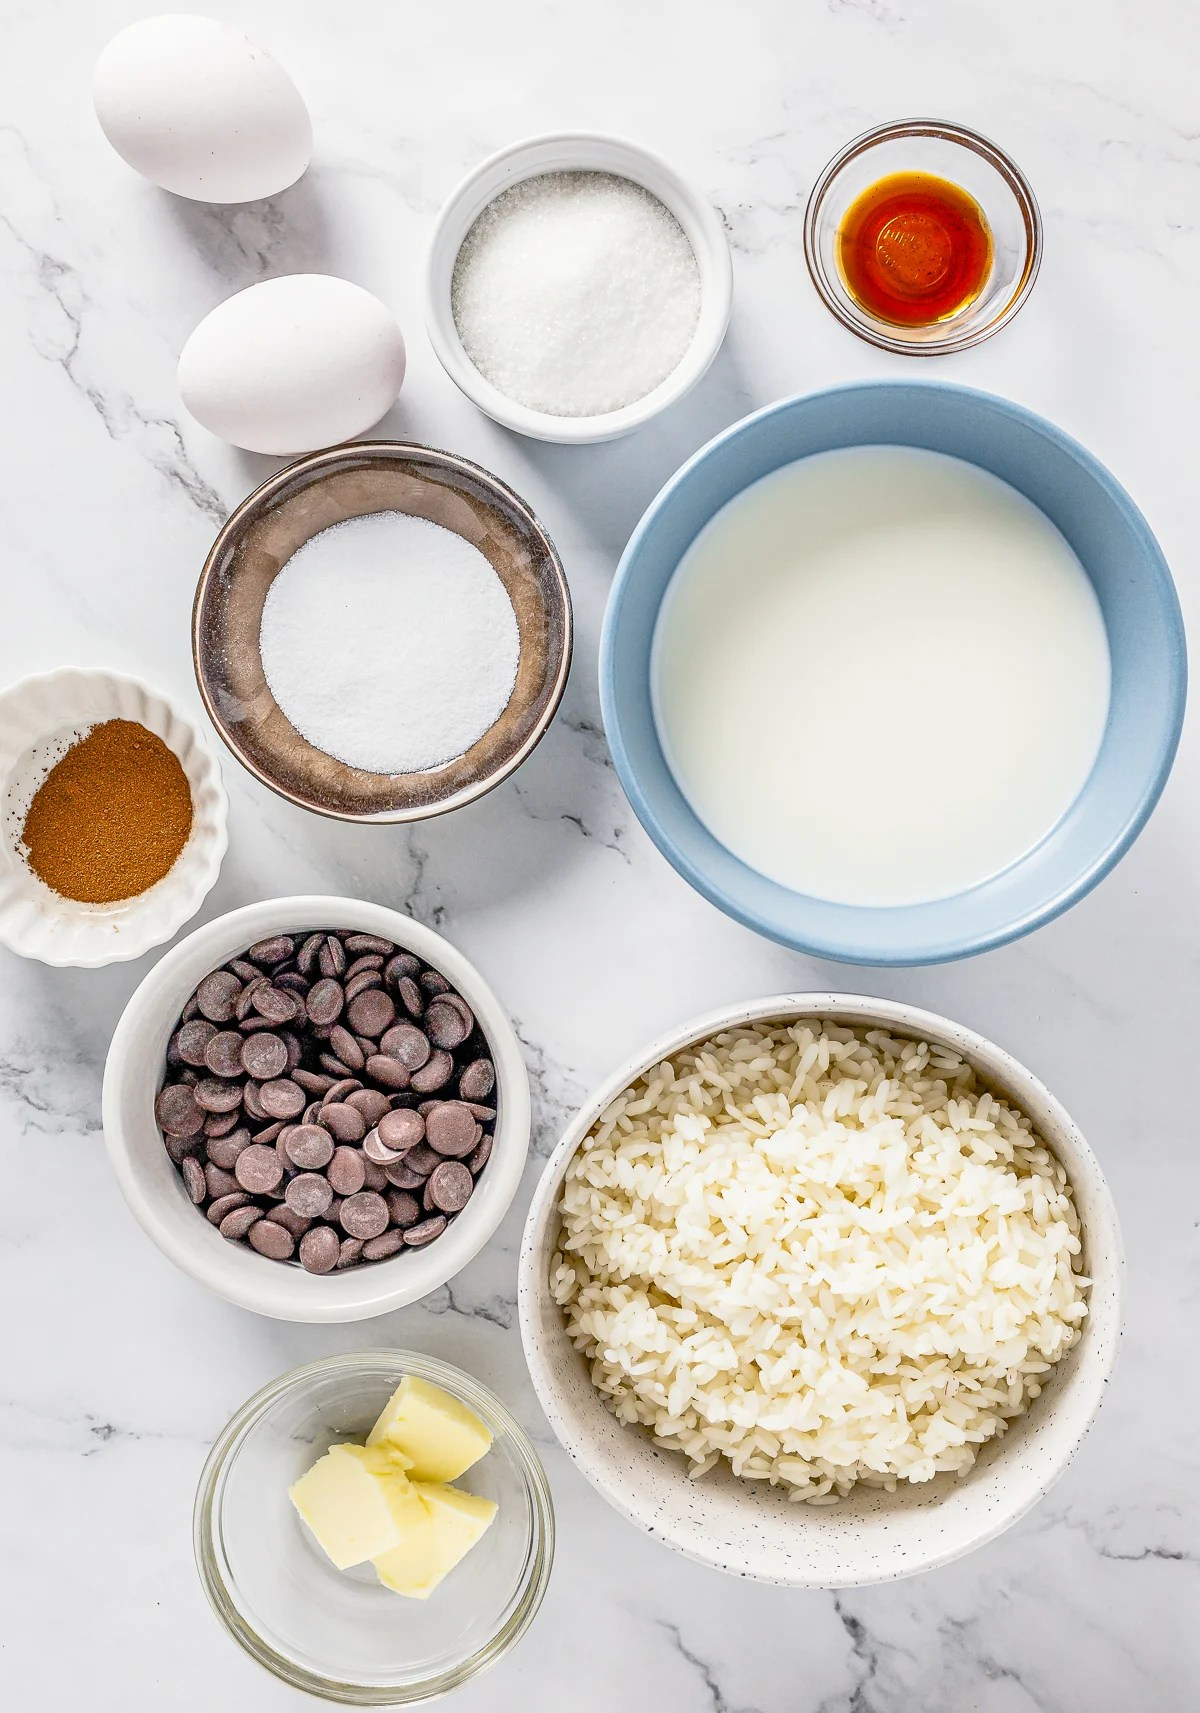 Ingredients needed to make Chocolate Rice Pudding.